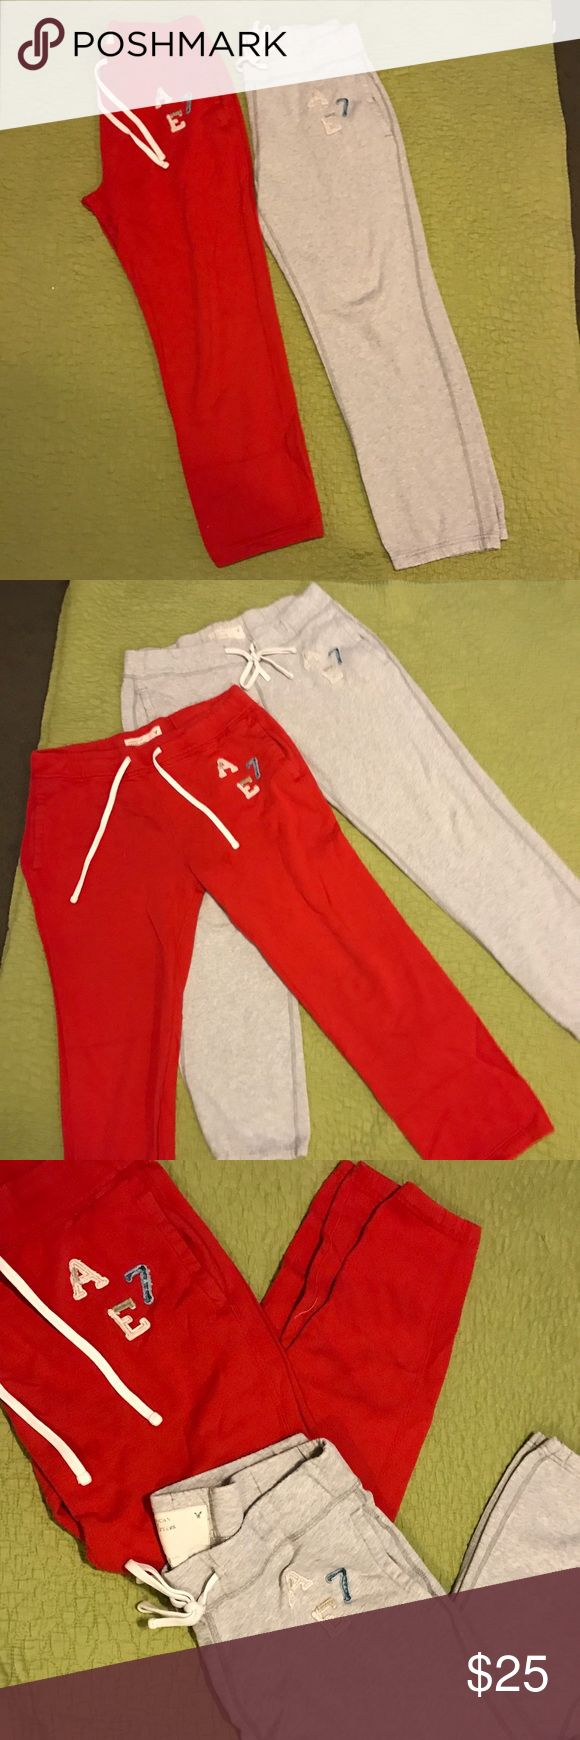 AEO Men's lounge pants Two pairs of American Eagle Men's sweatpants - one in red and one in grey.   Some signs of wear as these are in used condition but, they are super comfortable and great for sleep or loungewear.  They're too small for my husband and too large for me.  I hope someone can use these 💗 American Eagle Outfitters Pants Sweatpants & Joggers